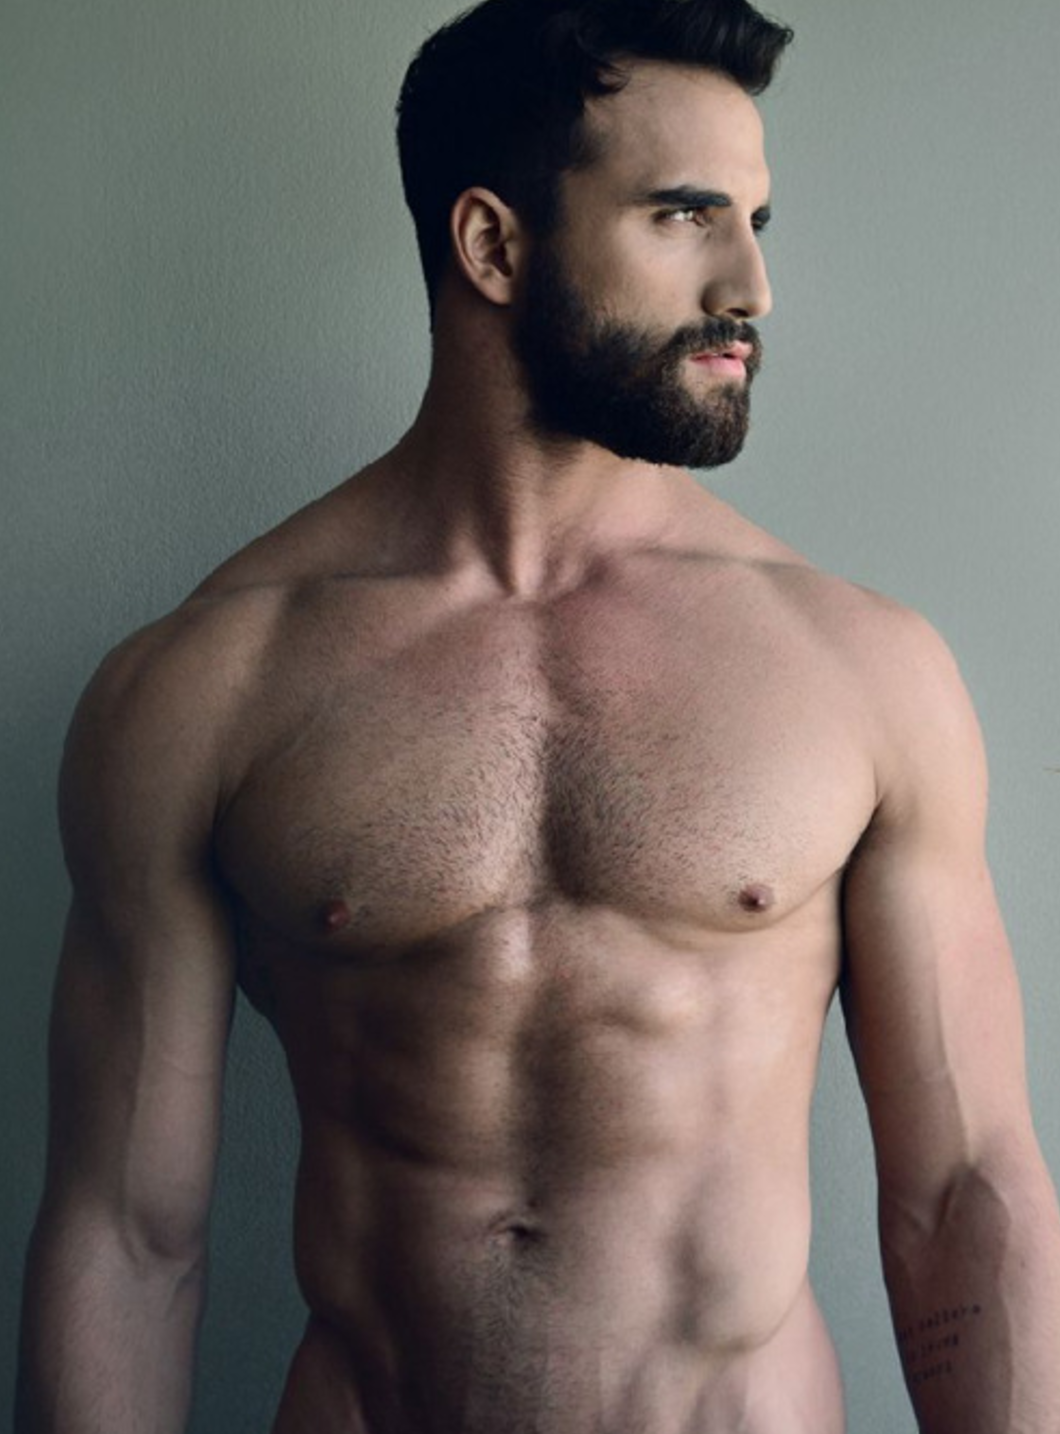 Bearded Porn Tumblr taken from tumblr: beards – manhunt daily